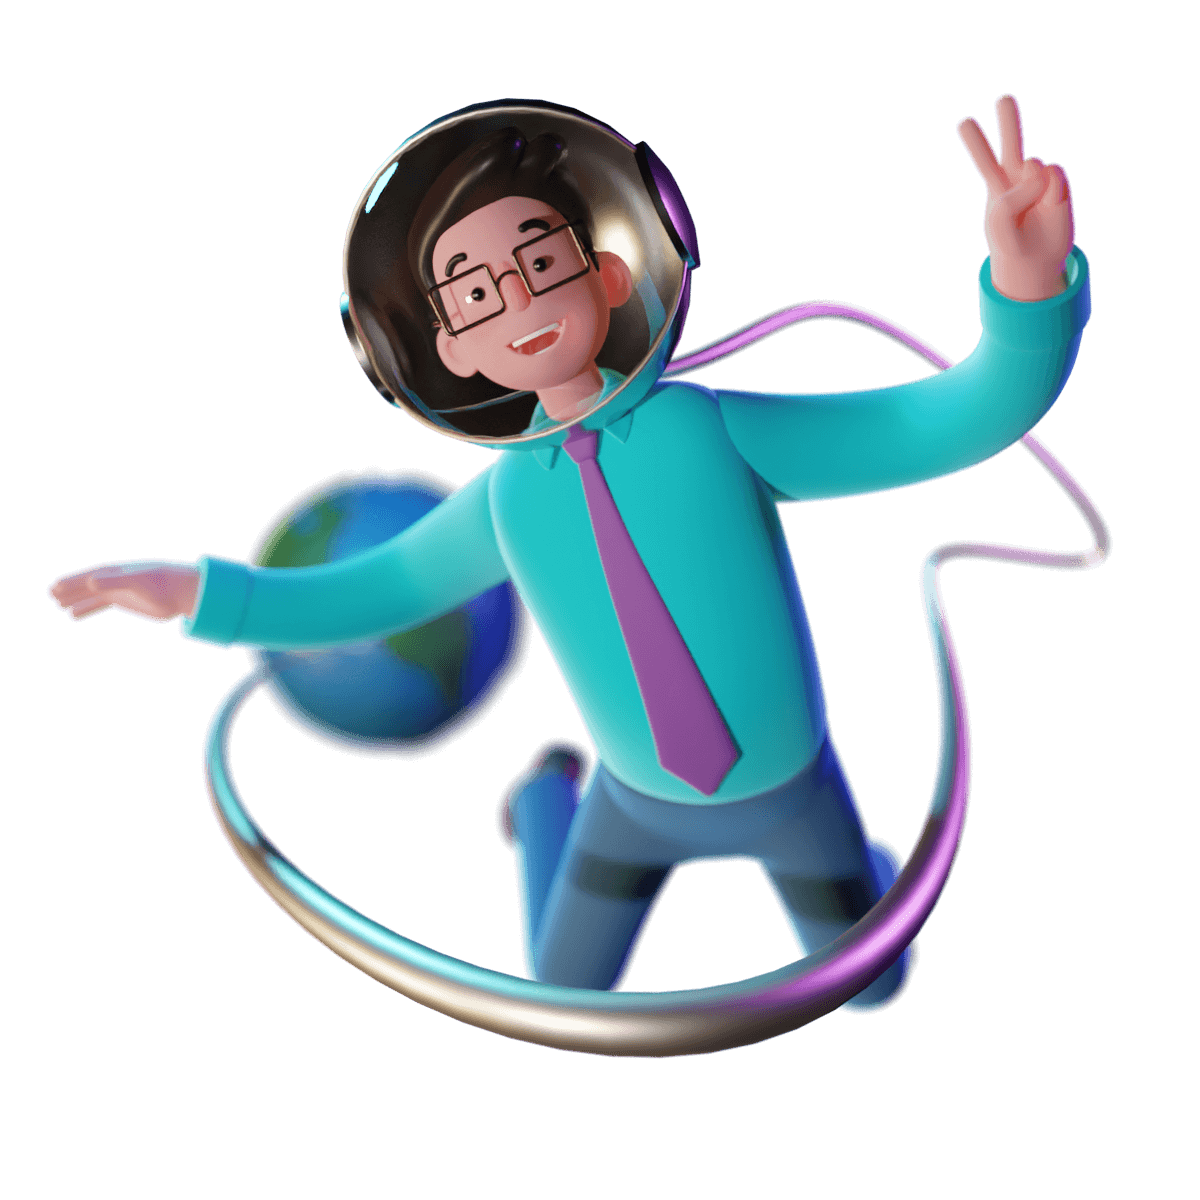 Space Guillermo